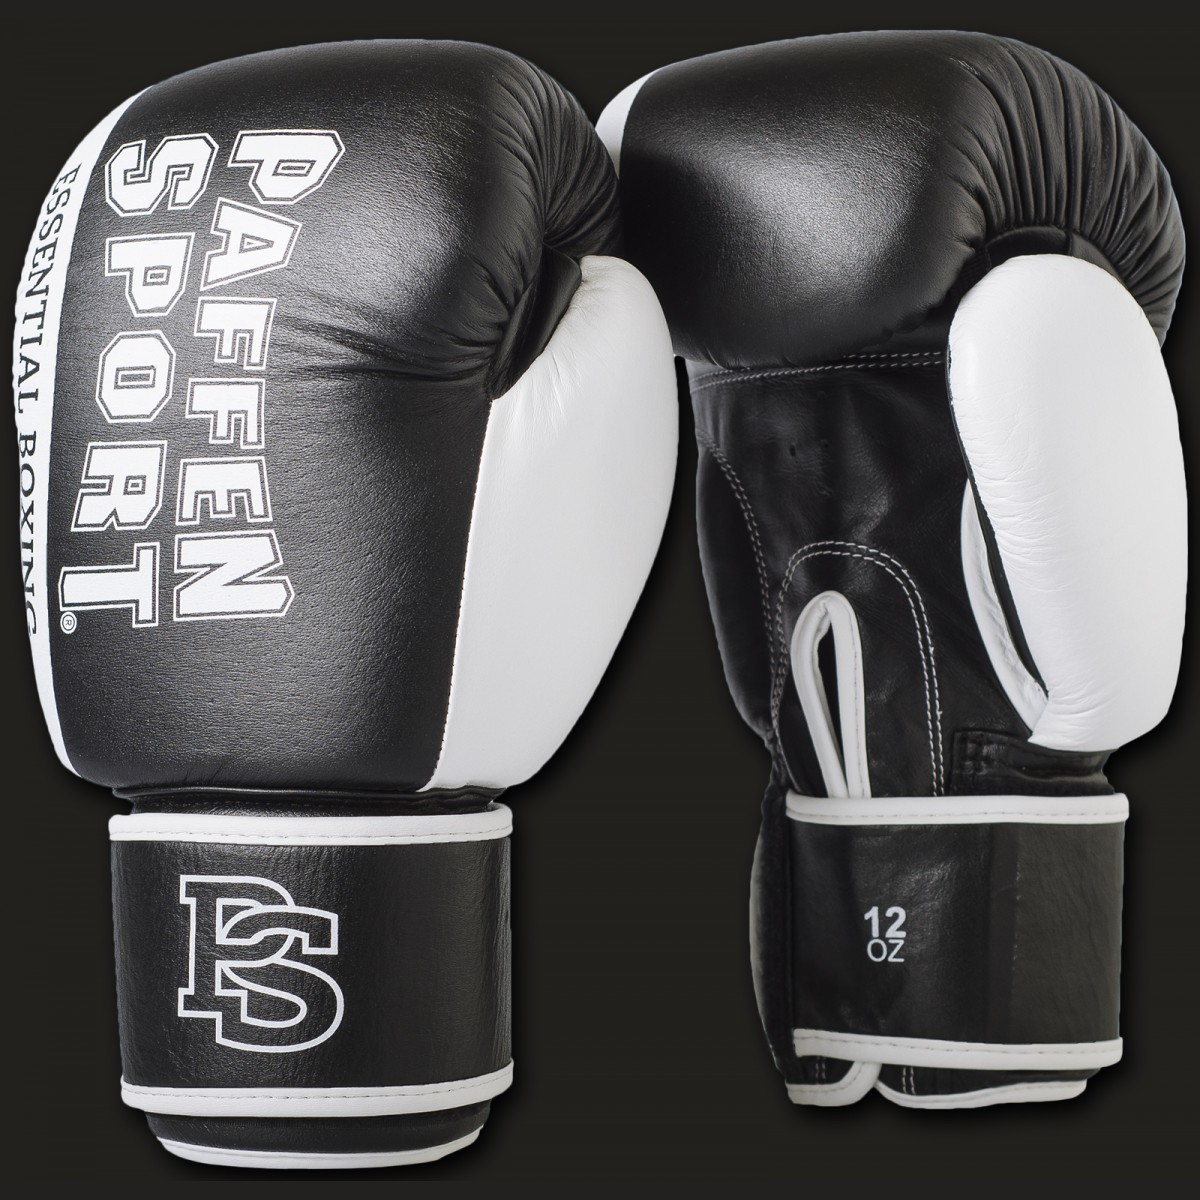 New Maxicon Boxing Gloves for Sparring//Competition in Genuine Leather Quality